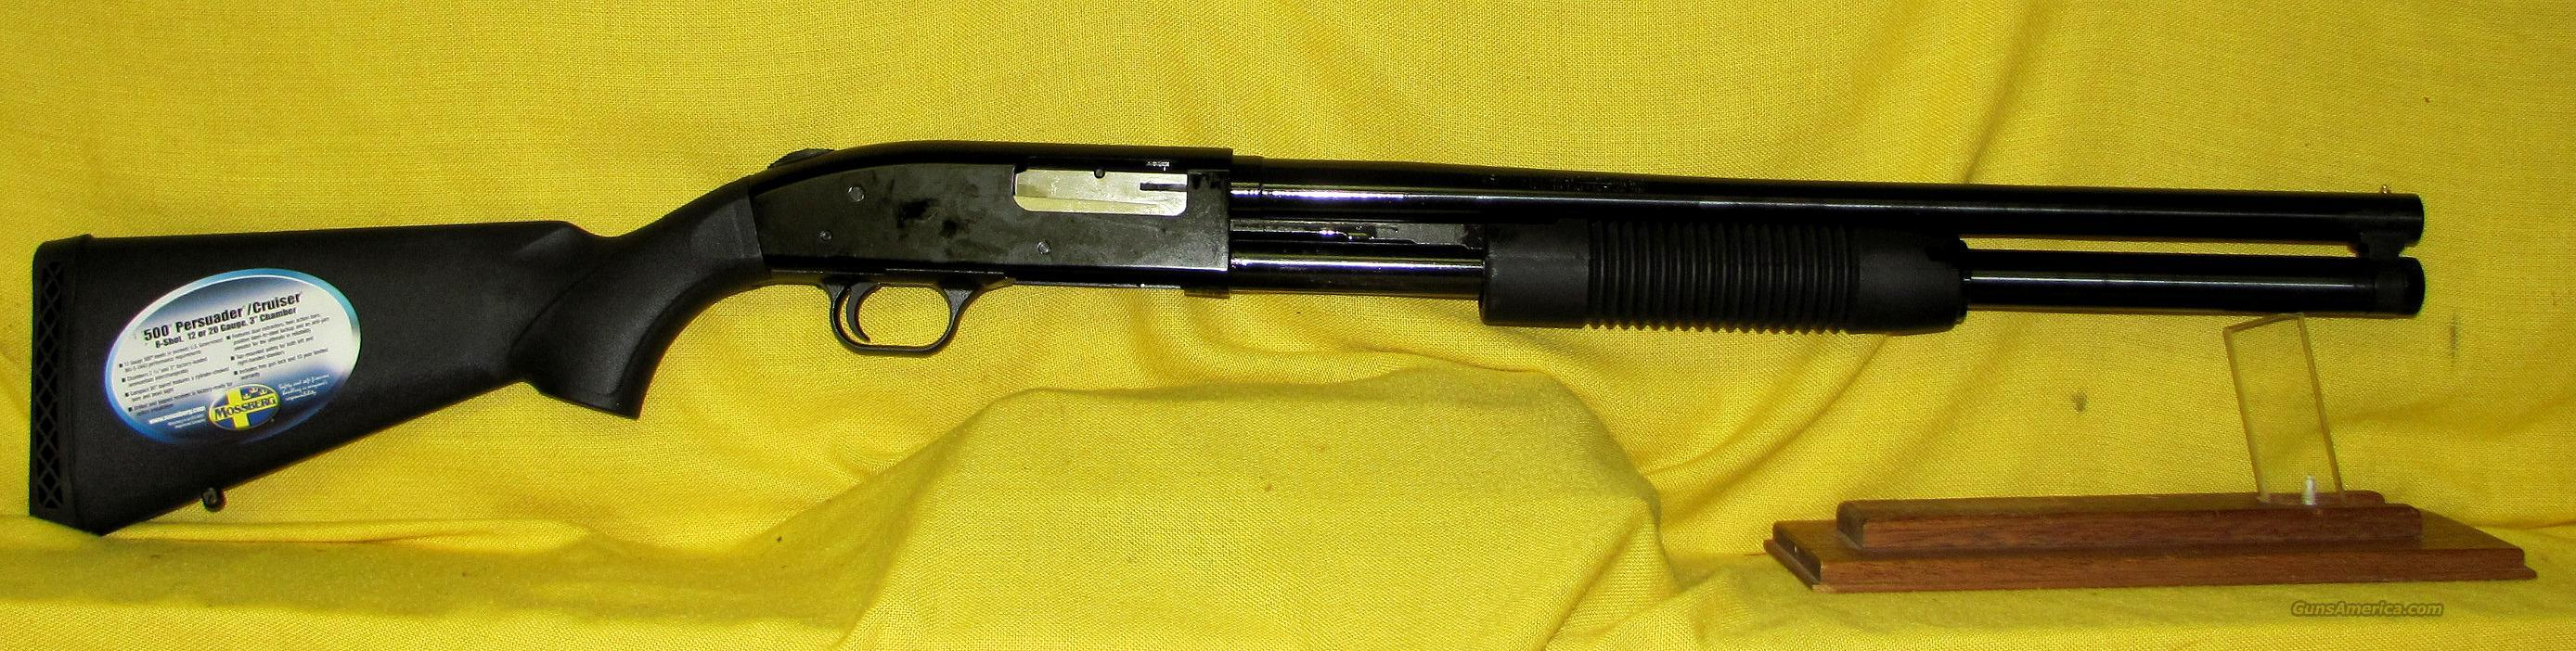 MOSSBERG 500 PERSUADER  Guns > Shotguns > Mossberg Shotguns > Pump > Tactical